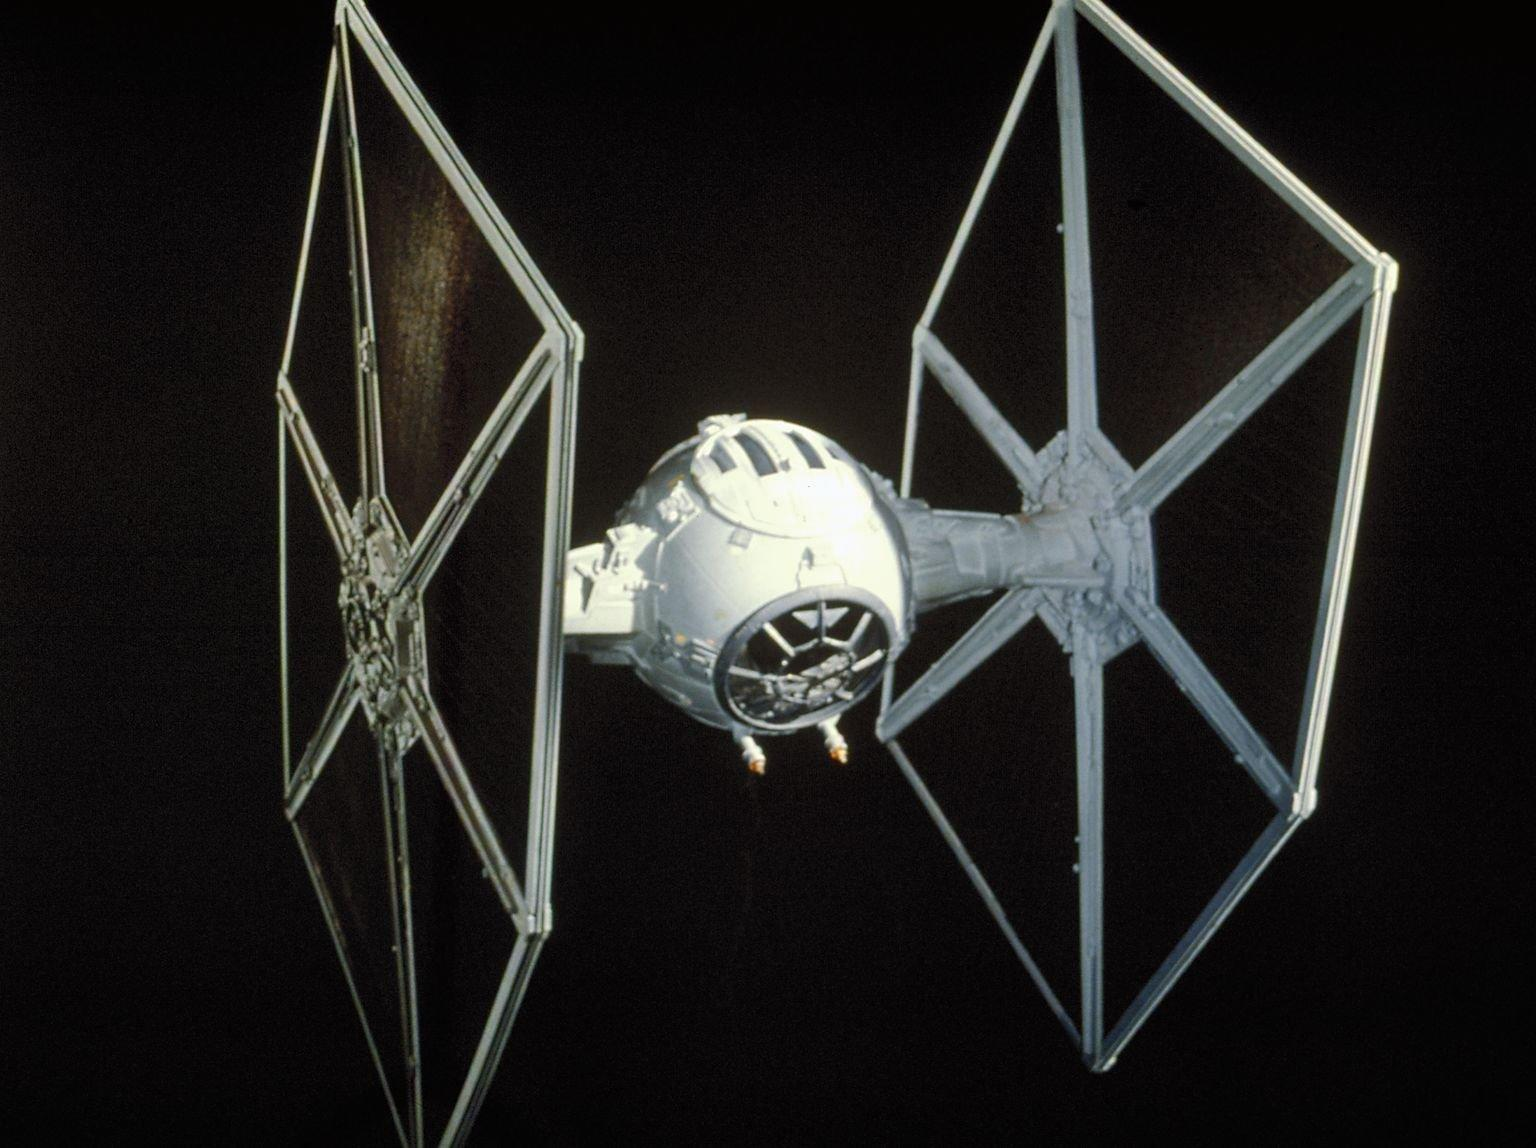 20. Imperial-era TIE fighter